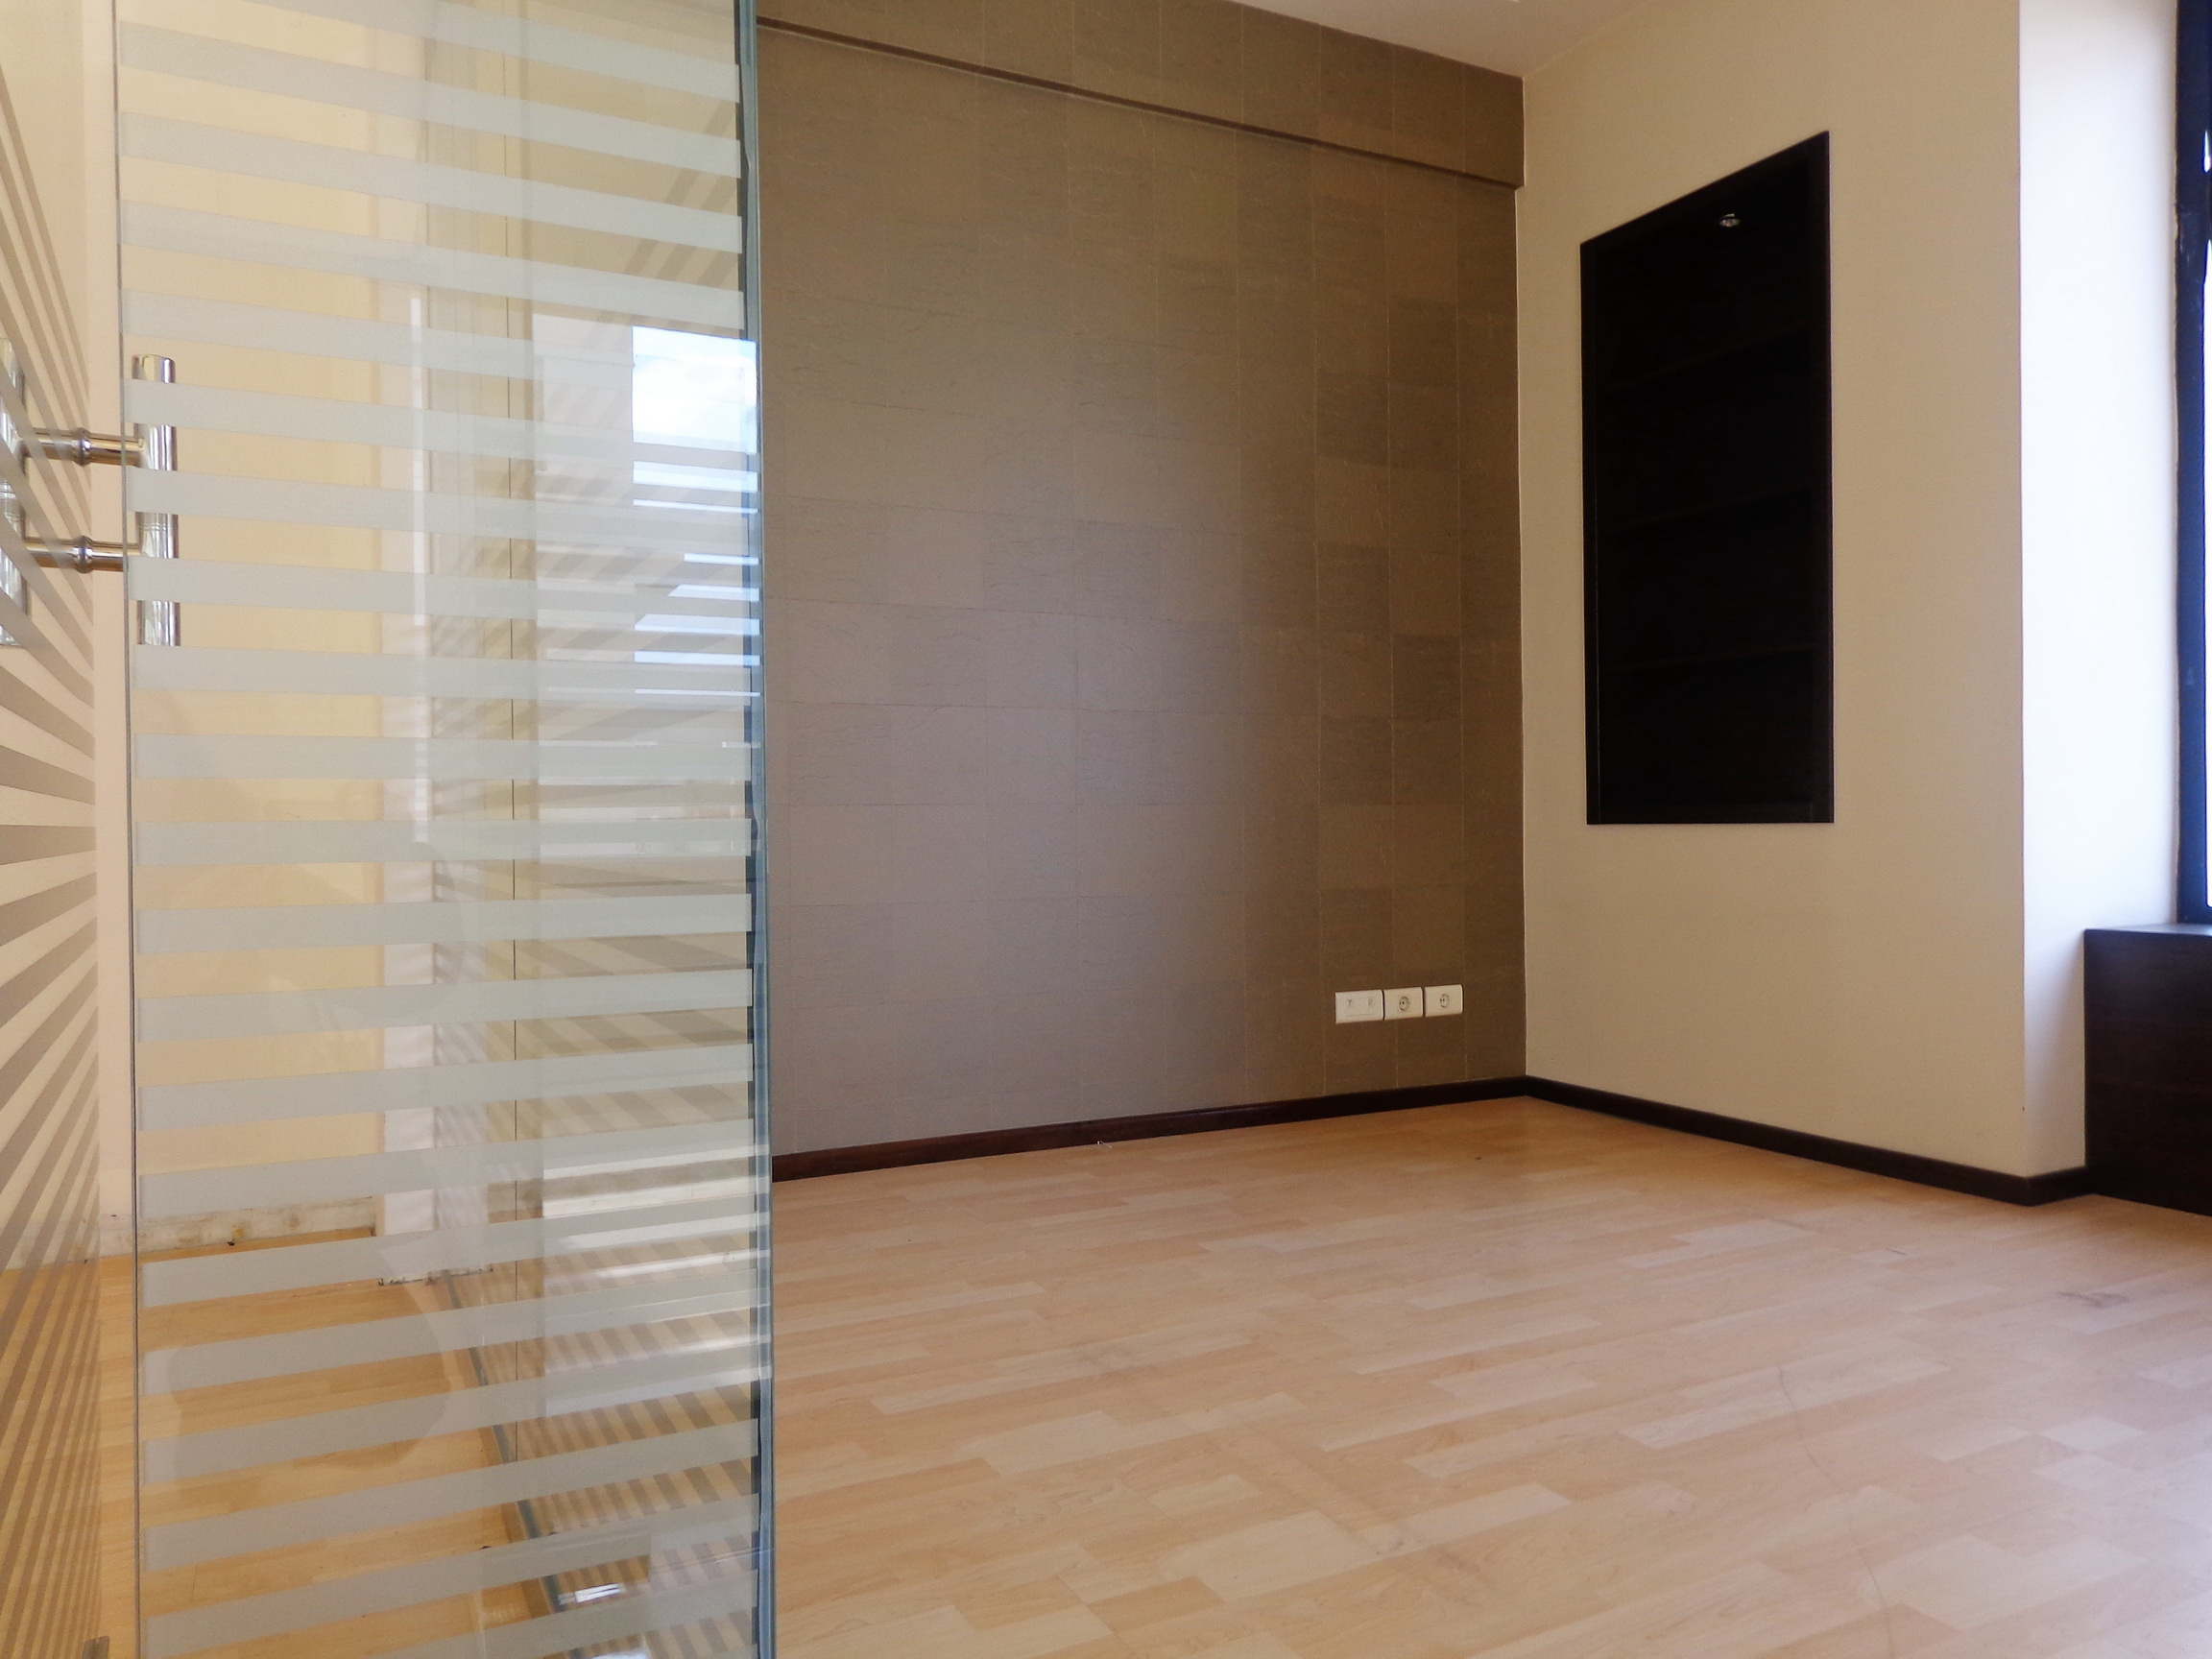 Office for Rent, Beirut Central District, 110 sqm,  33,000 USD